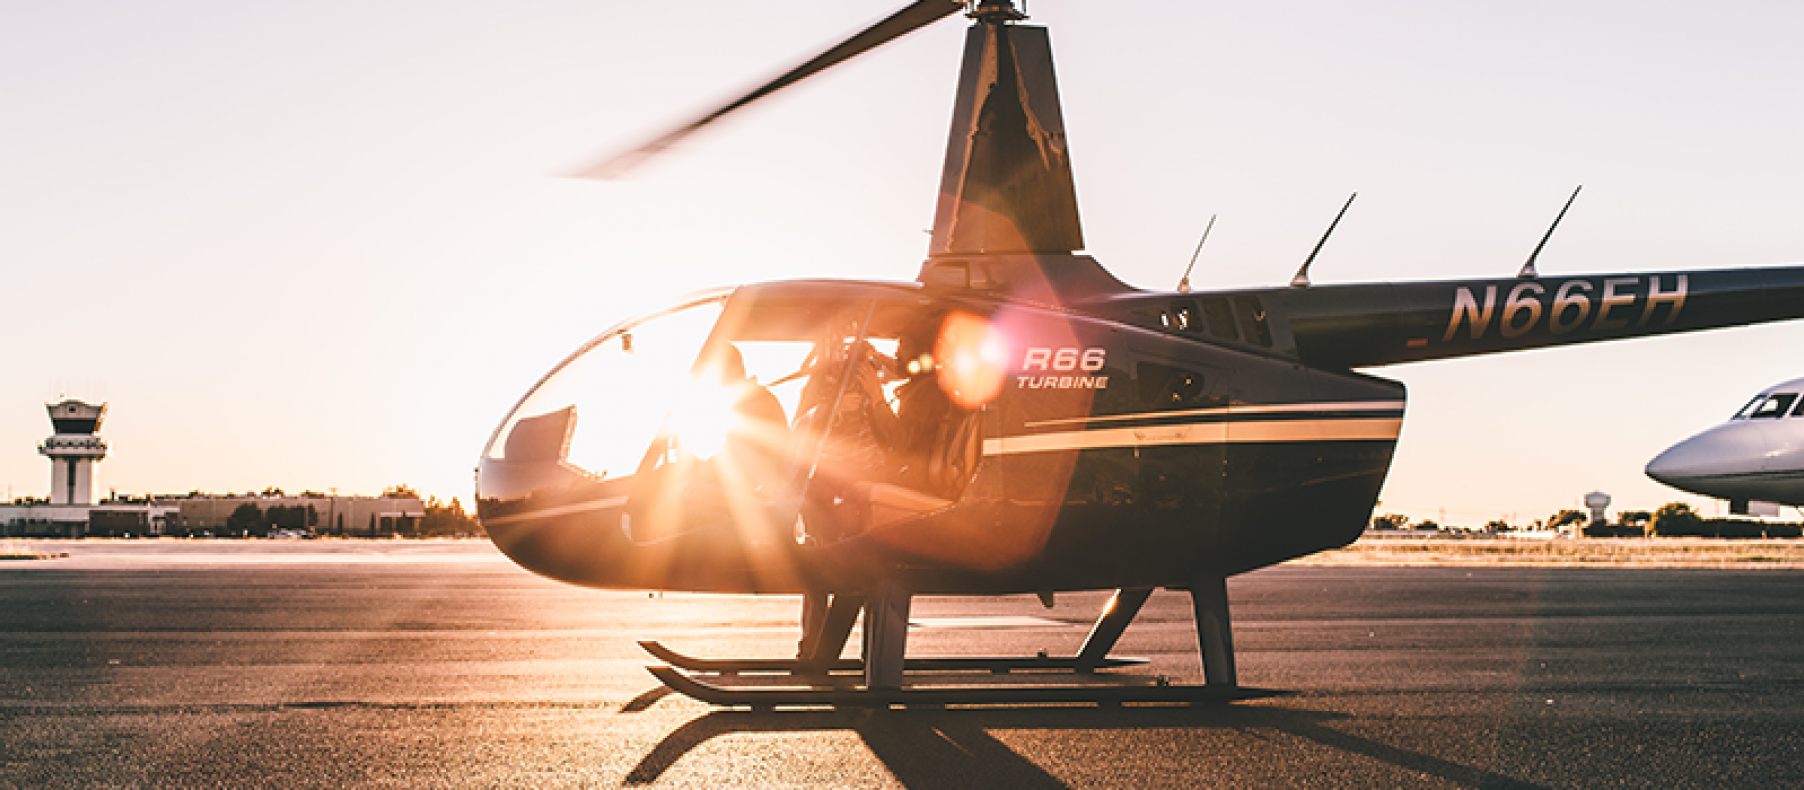 Helicopter glistening in the sunset or sunrise.